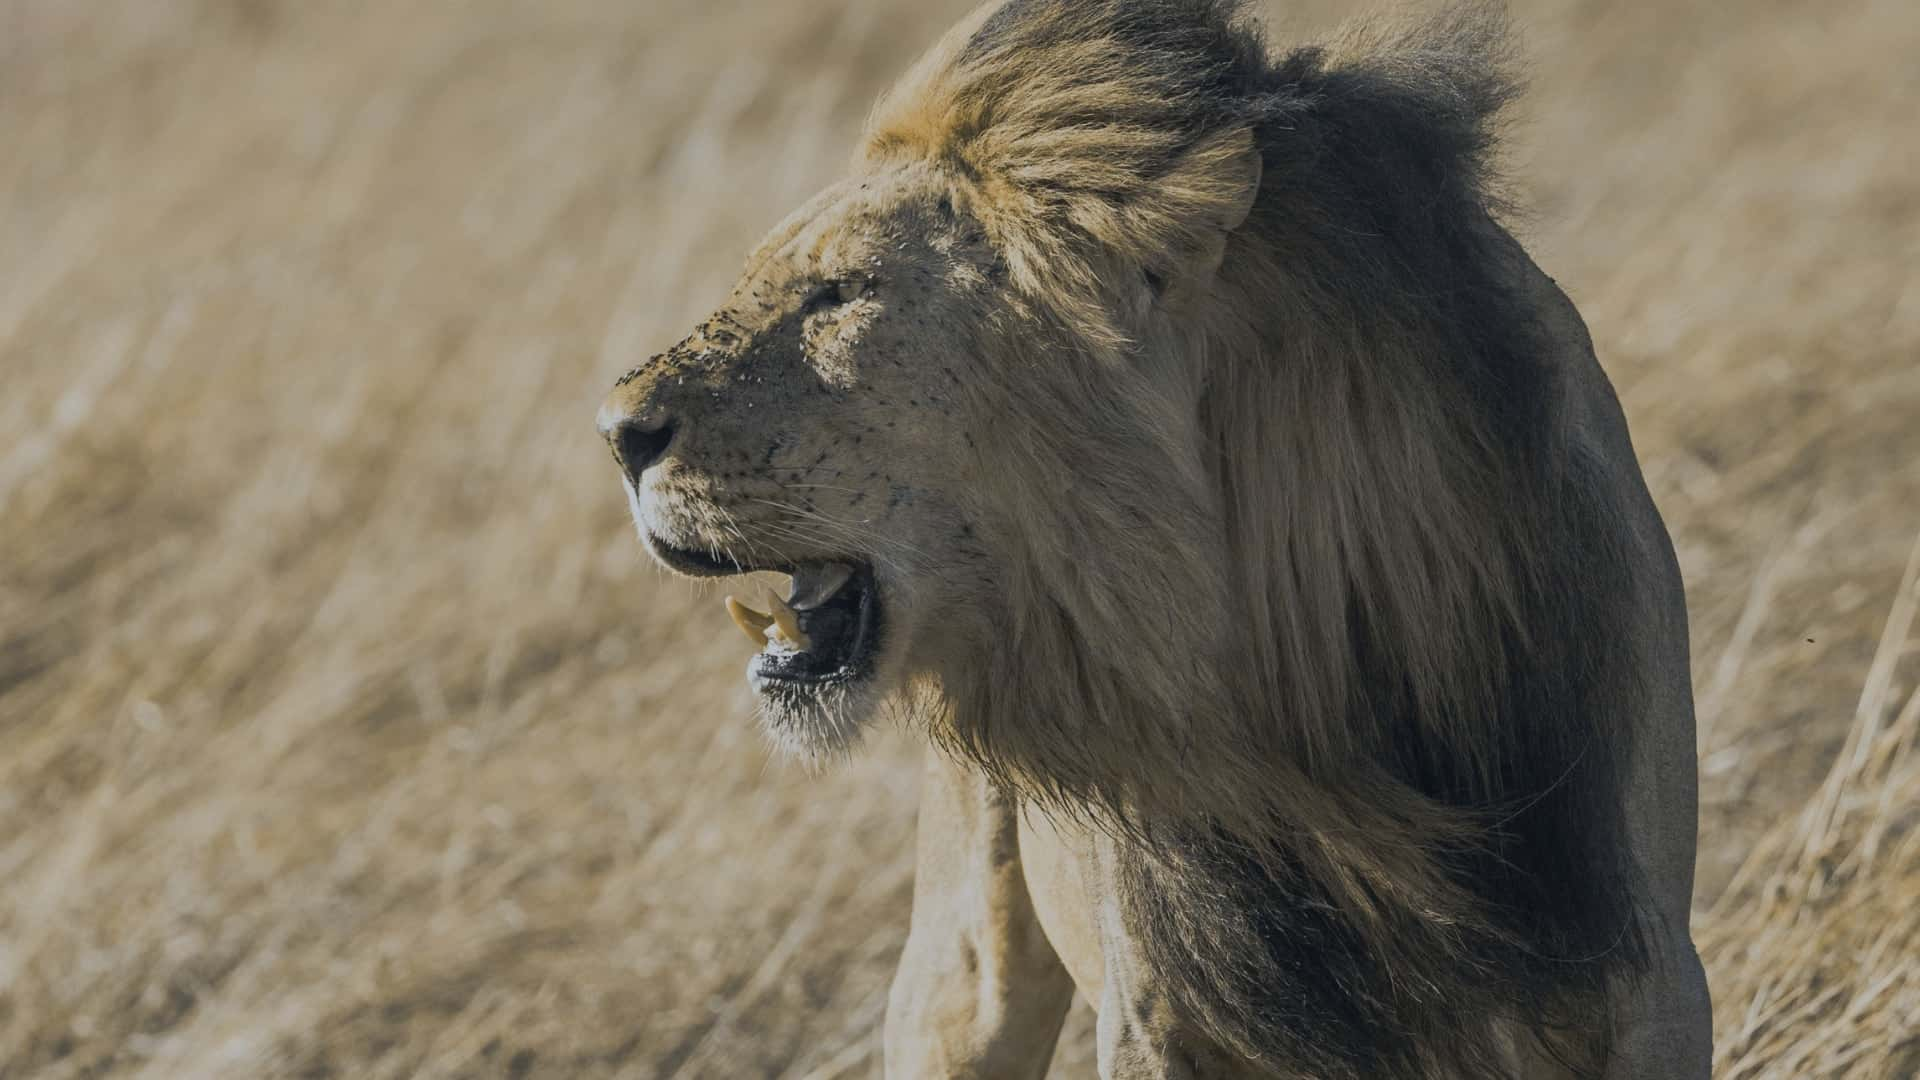 Escaped from being Dinner of Lions in Kruger Park